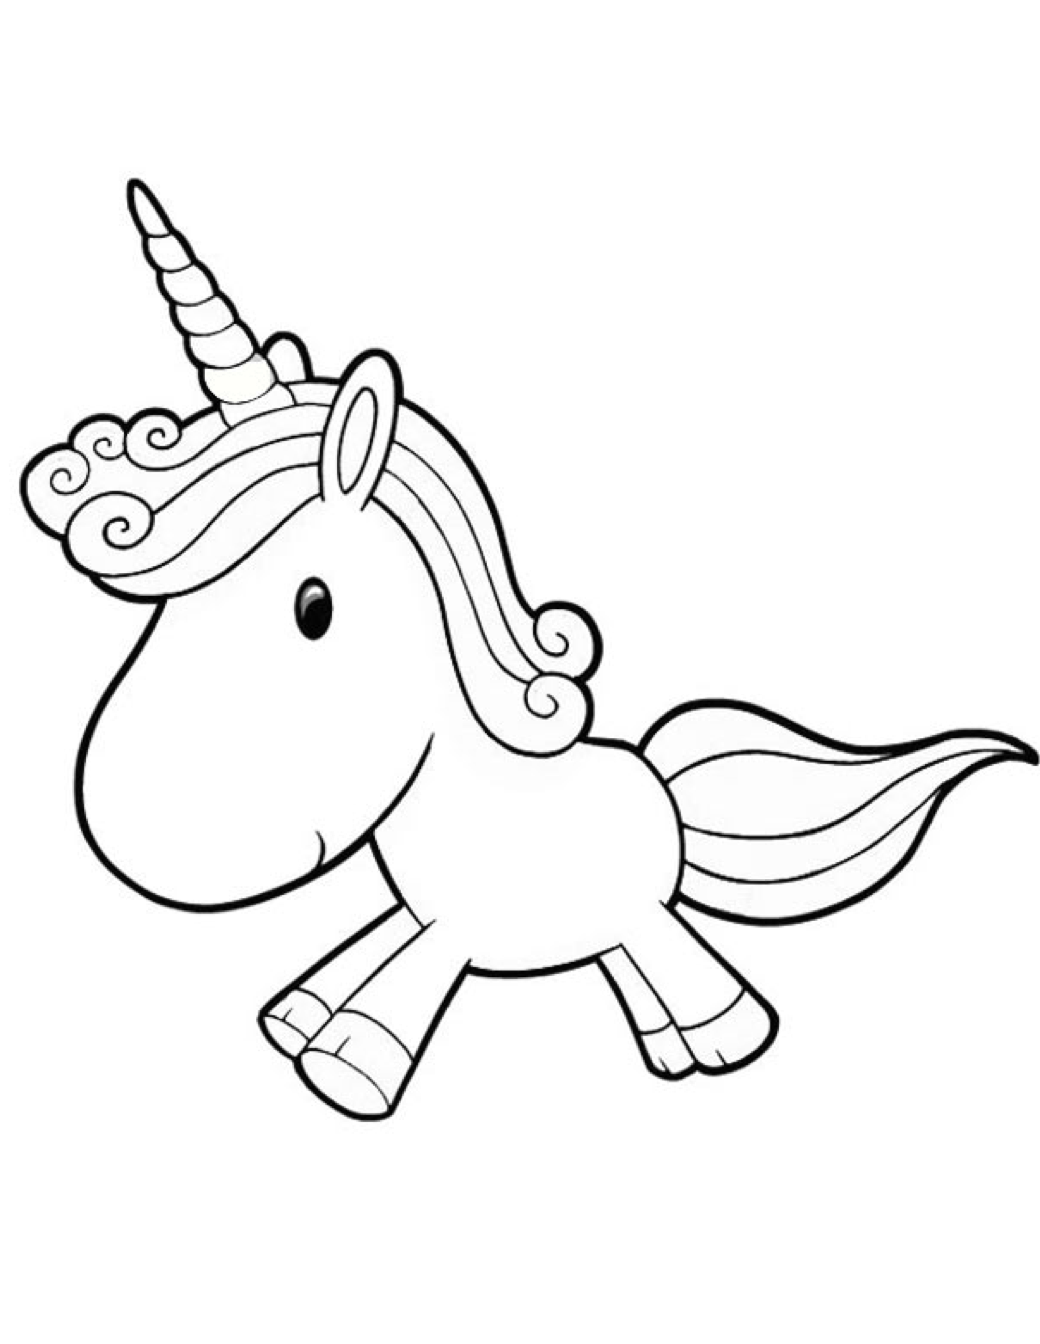 Cartoon Unicorn Coloring Page Coloring Page Amp Book For Kids